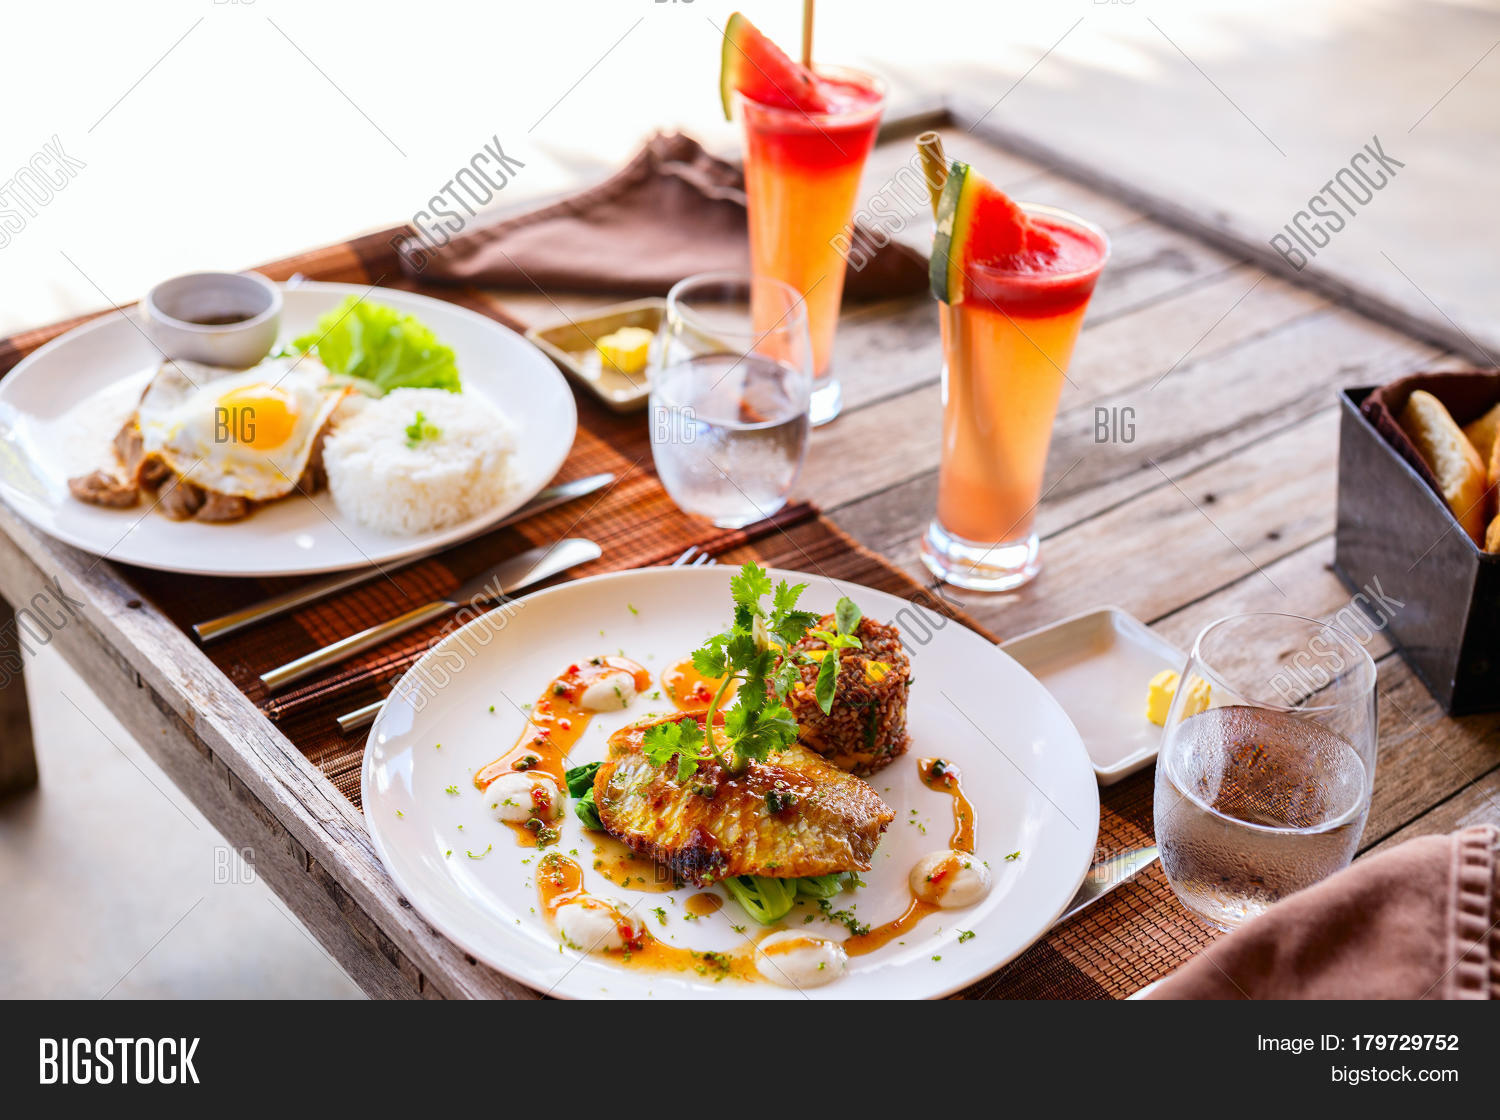 Delicious lunch two restaurant fish image photo bigstock for One fish two fish restaurant